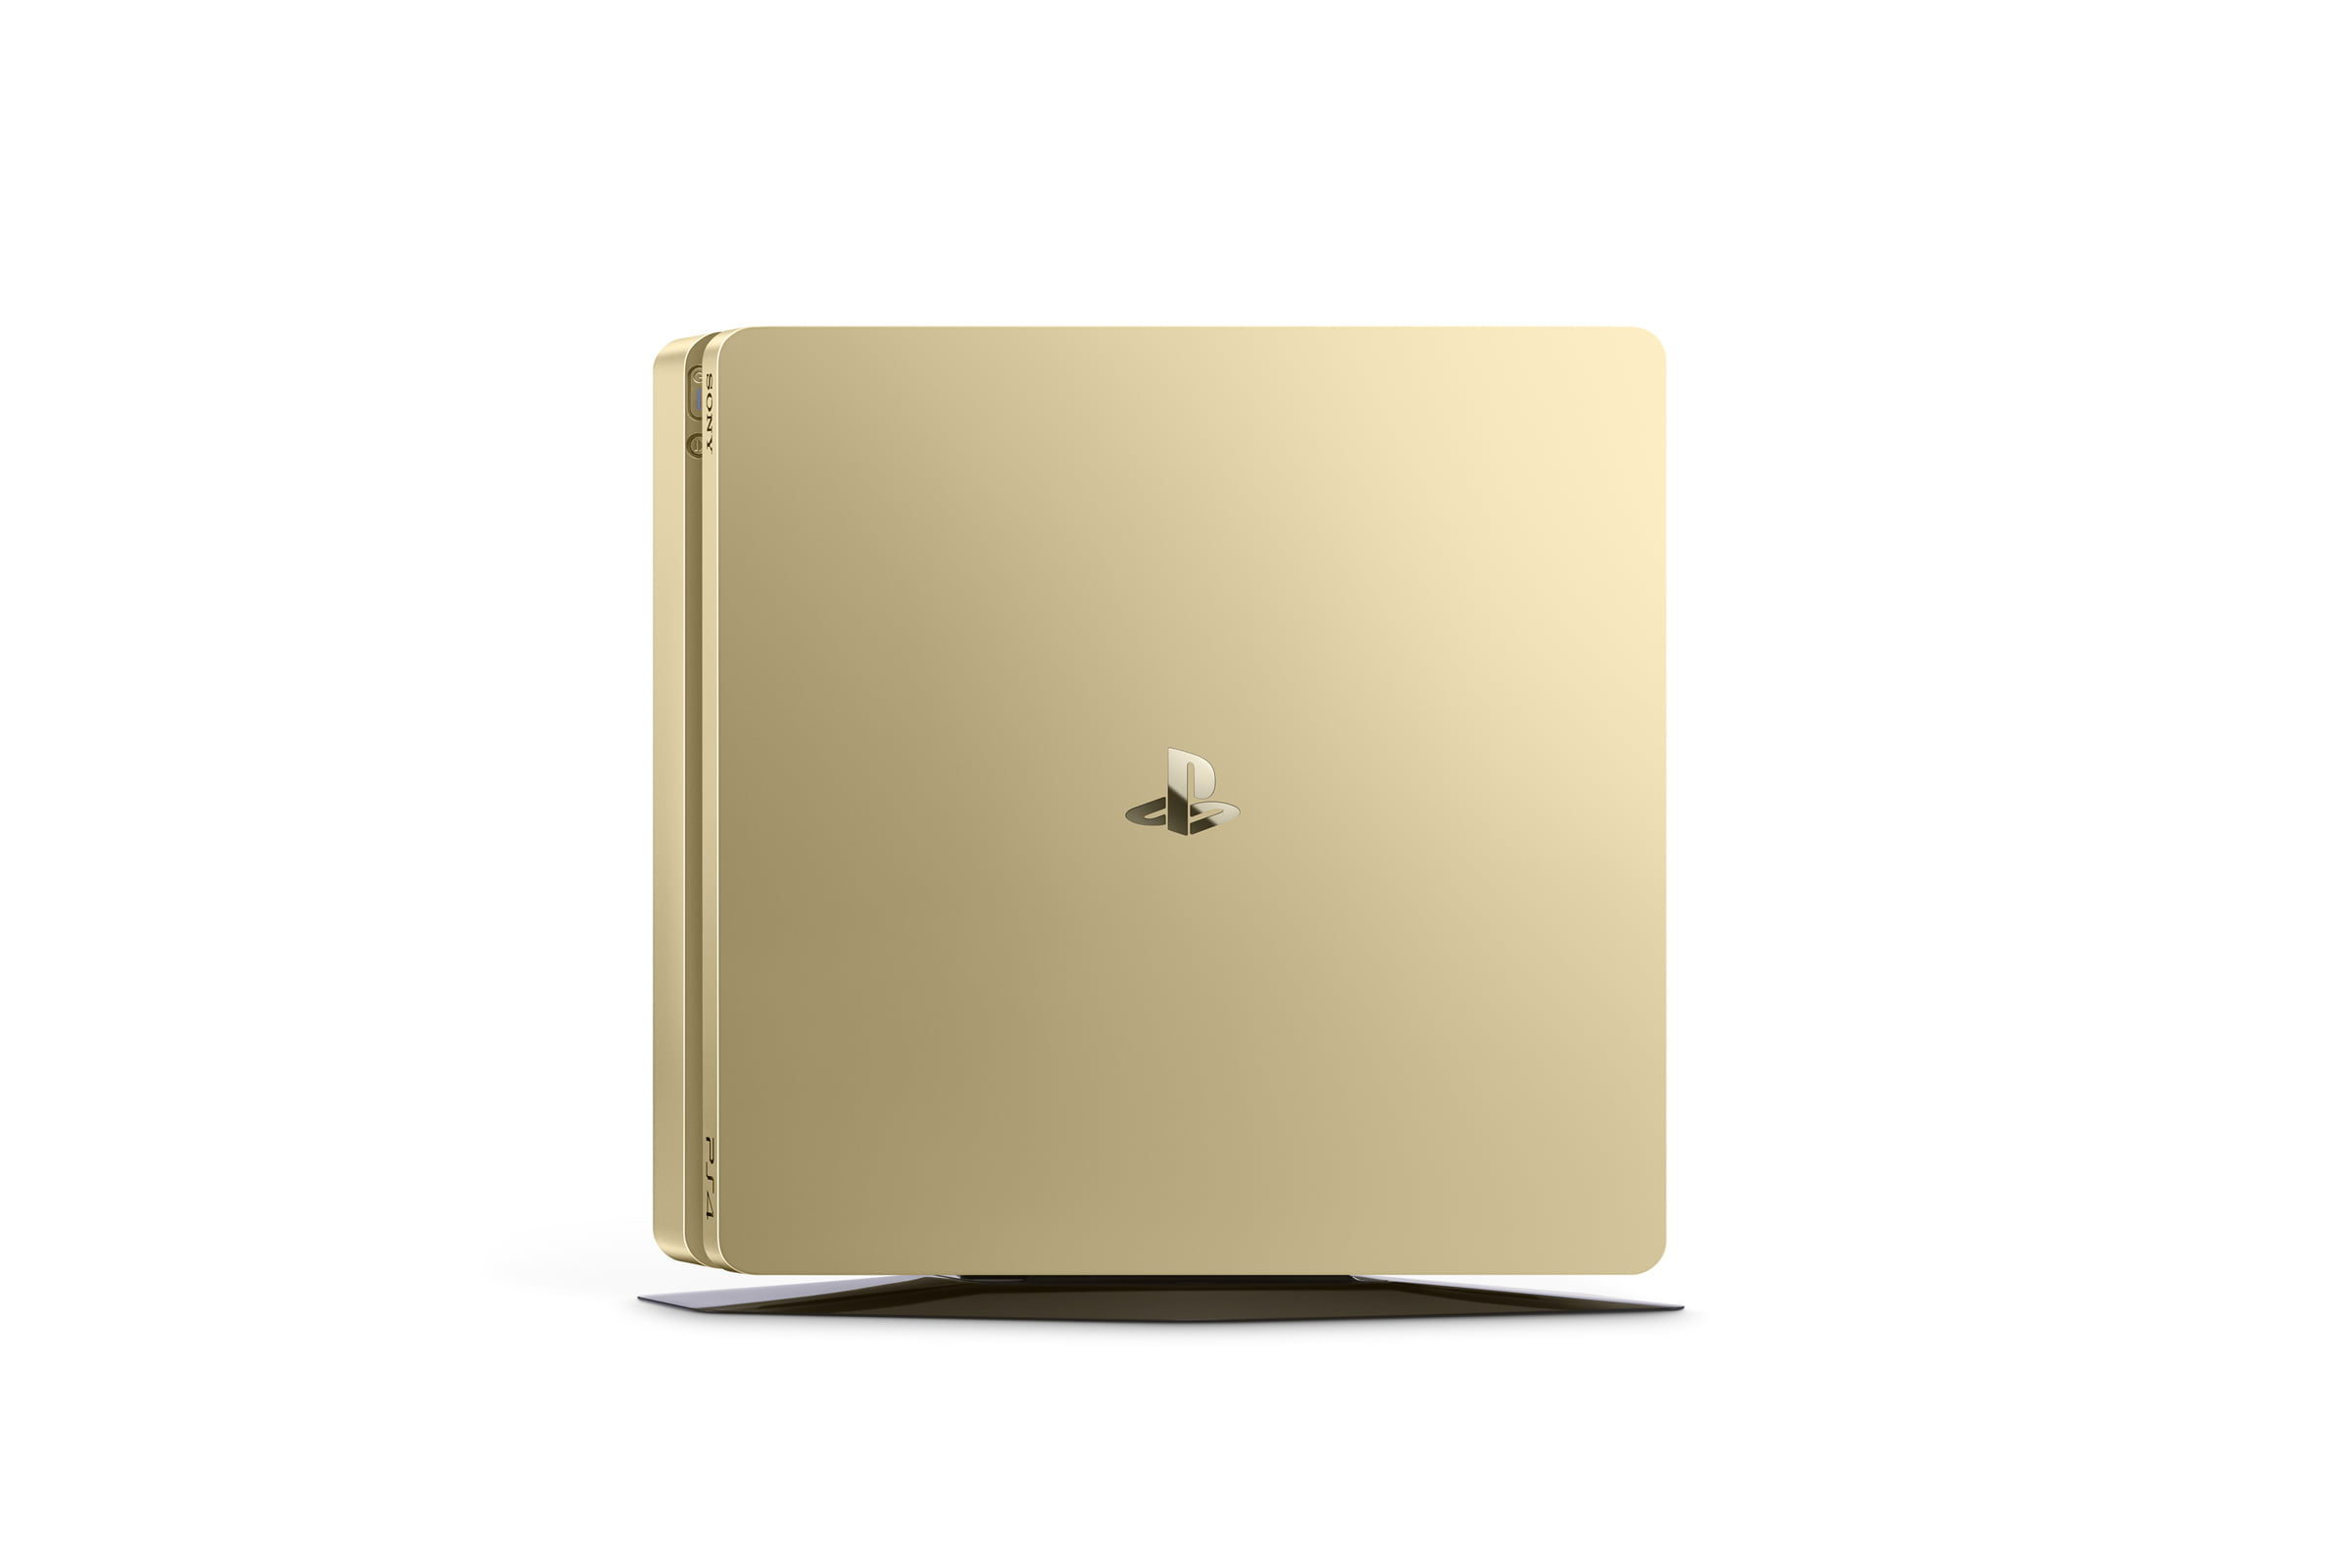 PS4 couleur Or